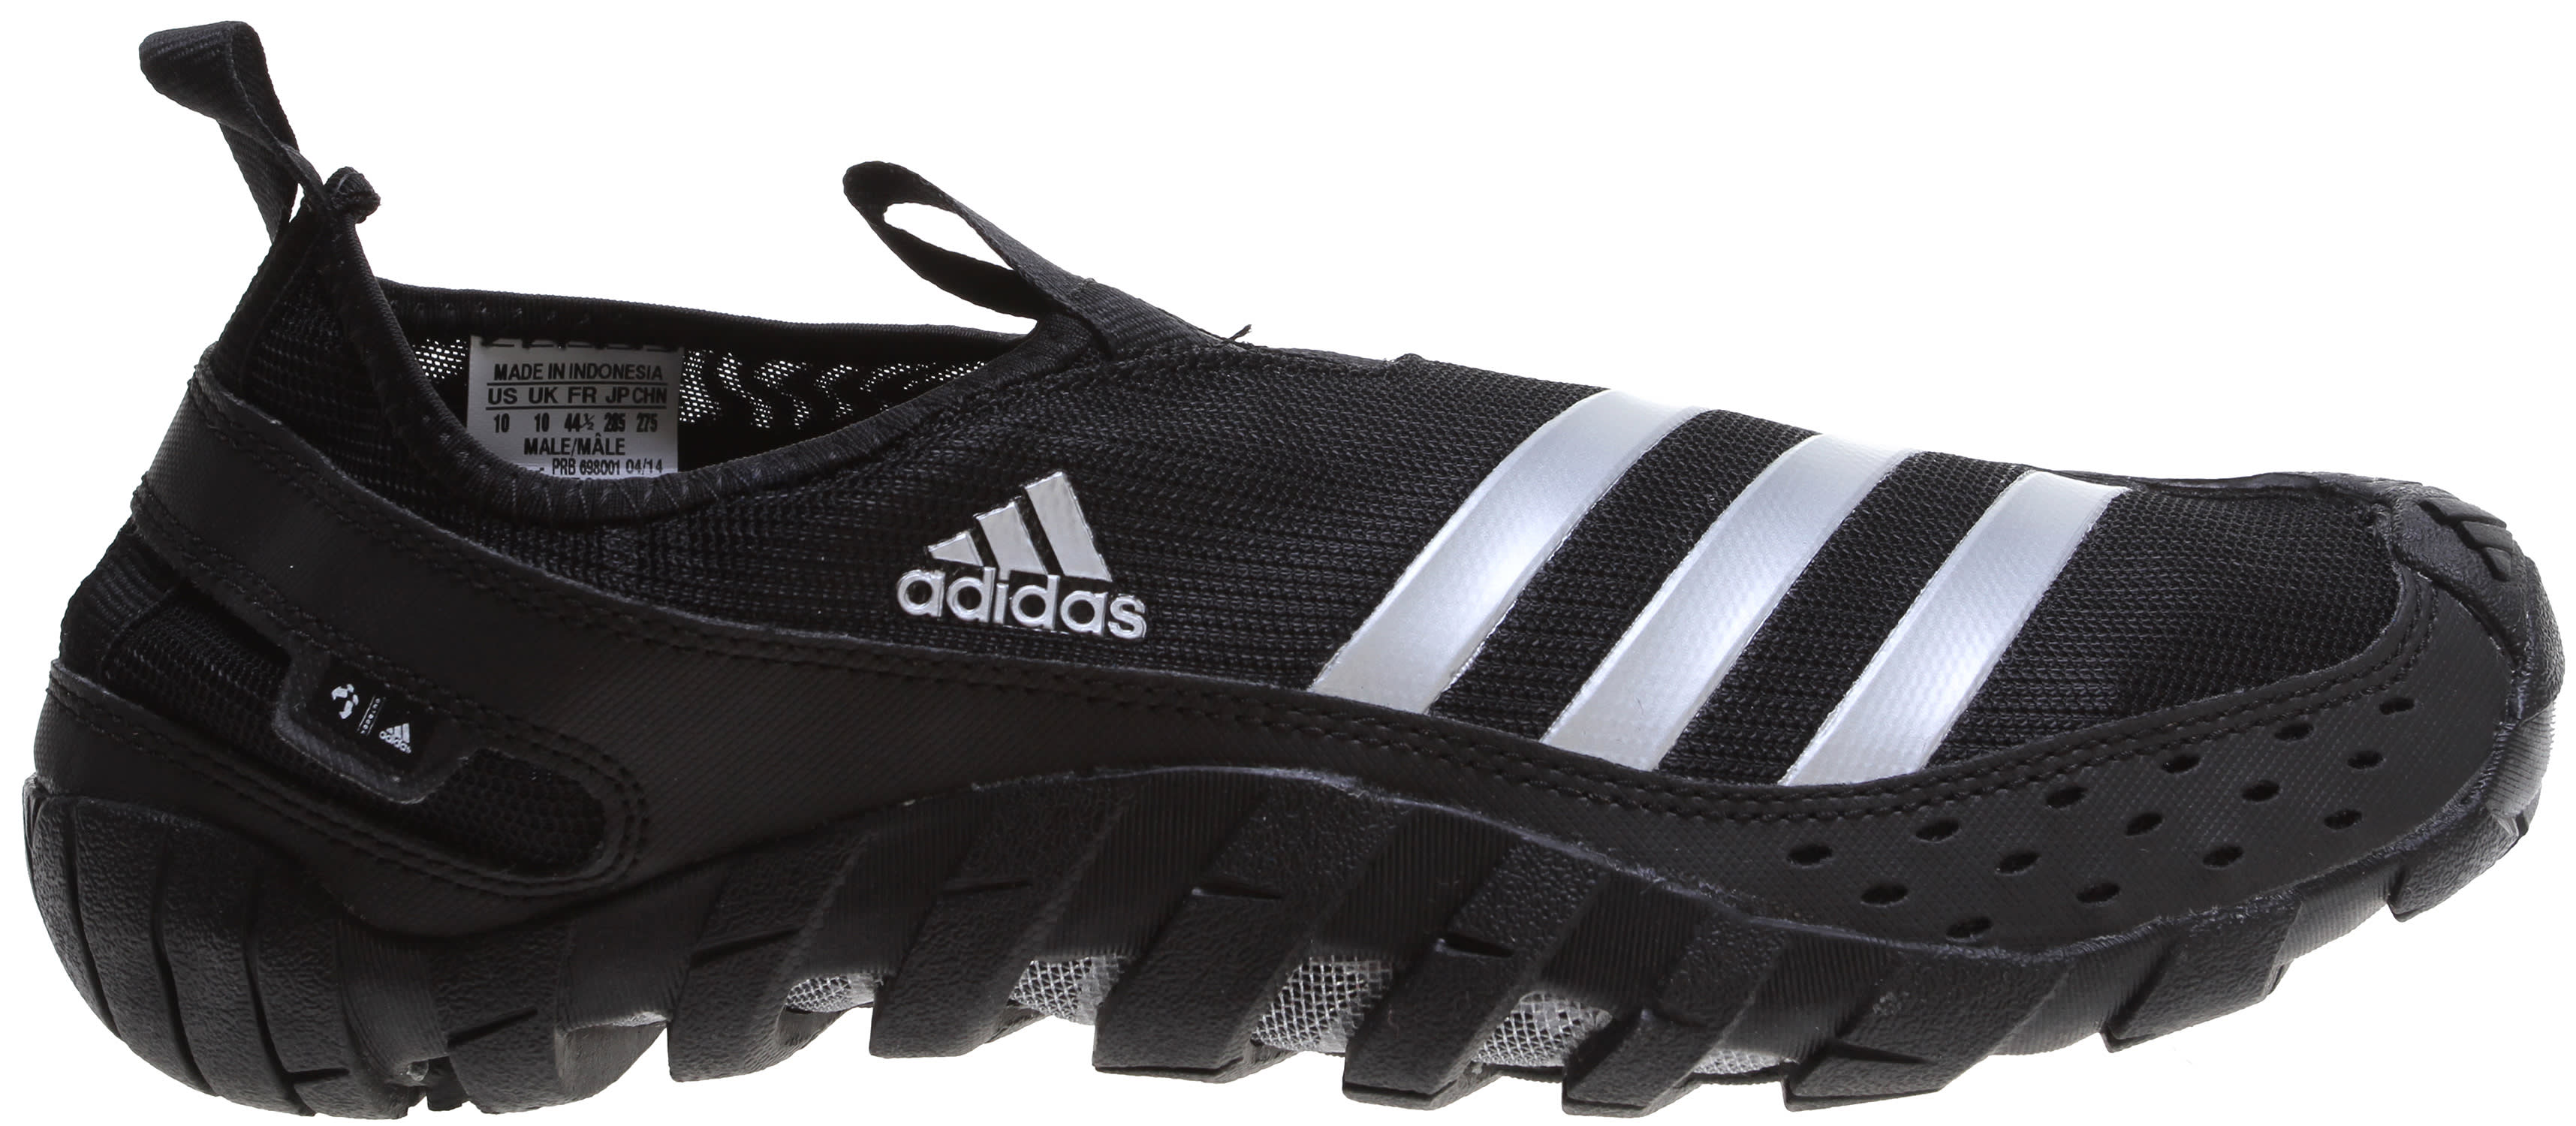 Adidas Non Marking Sole Shoes